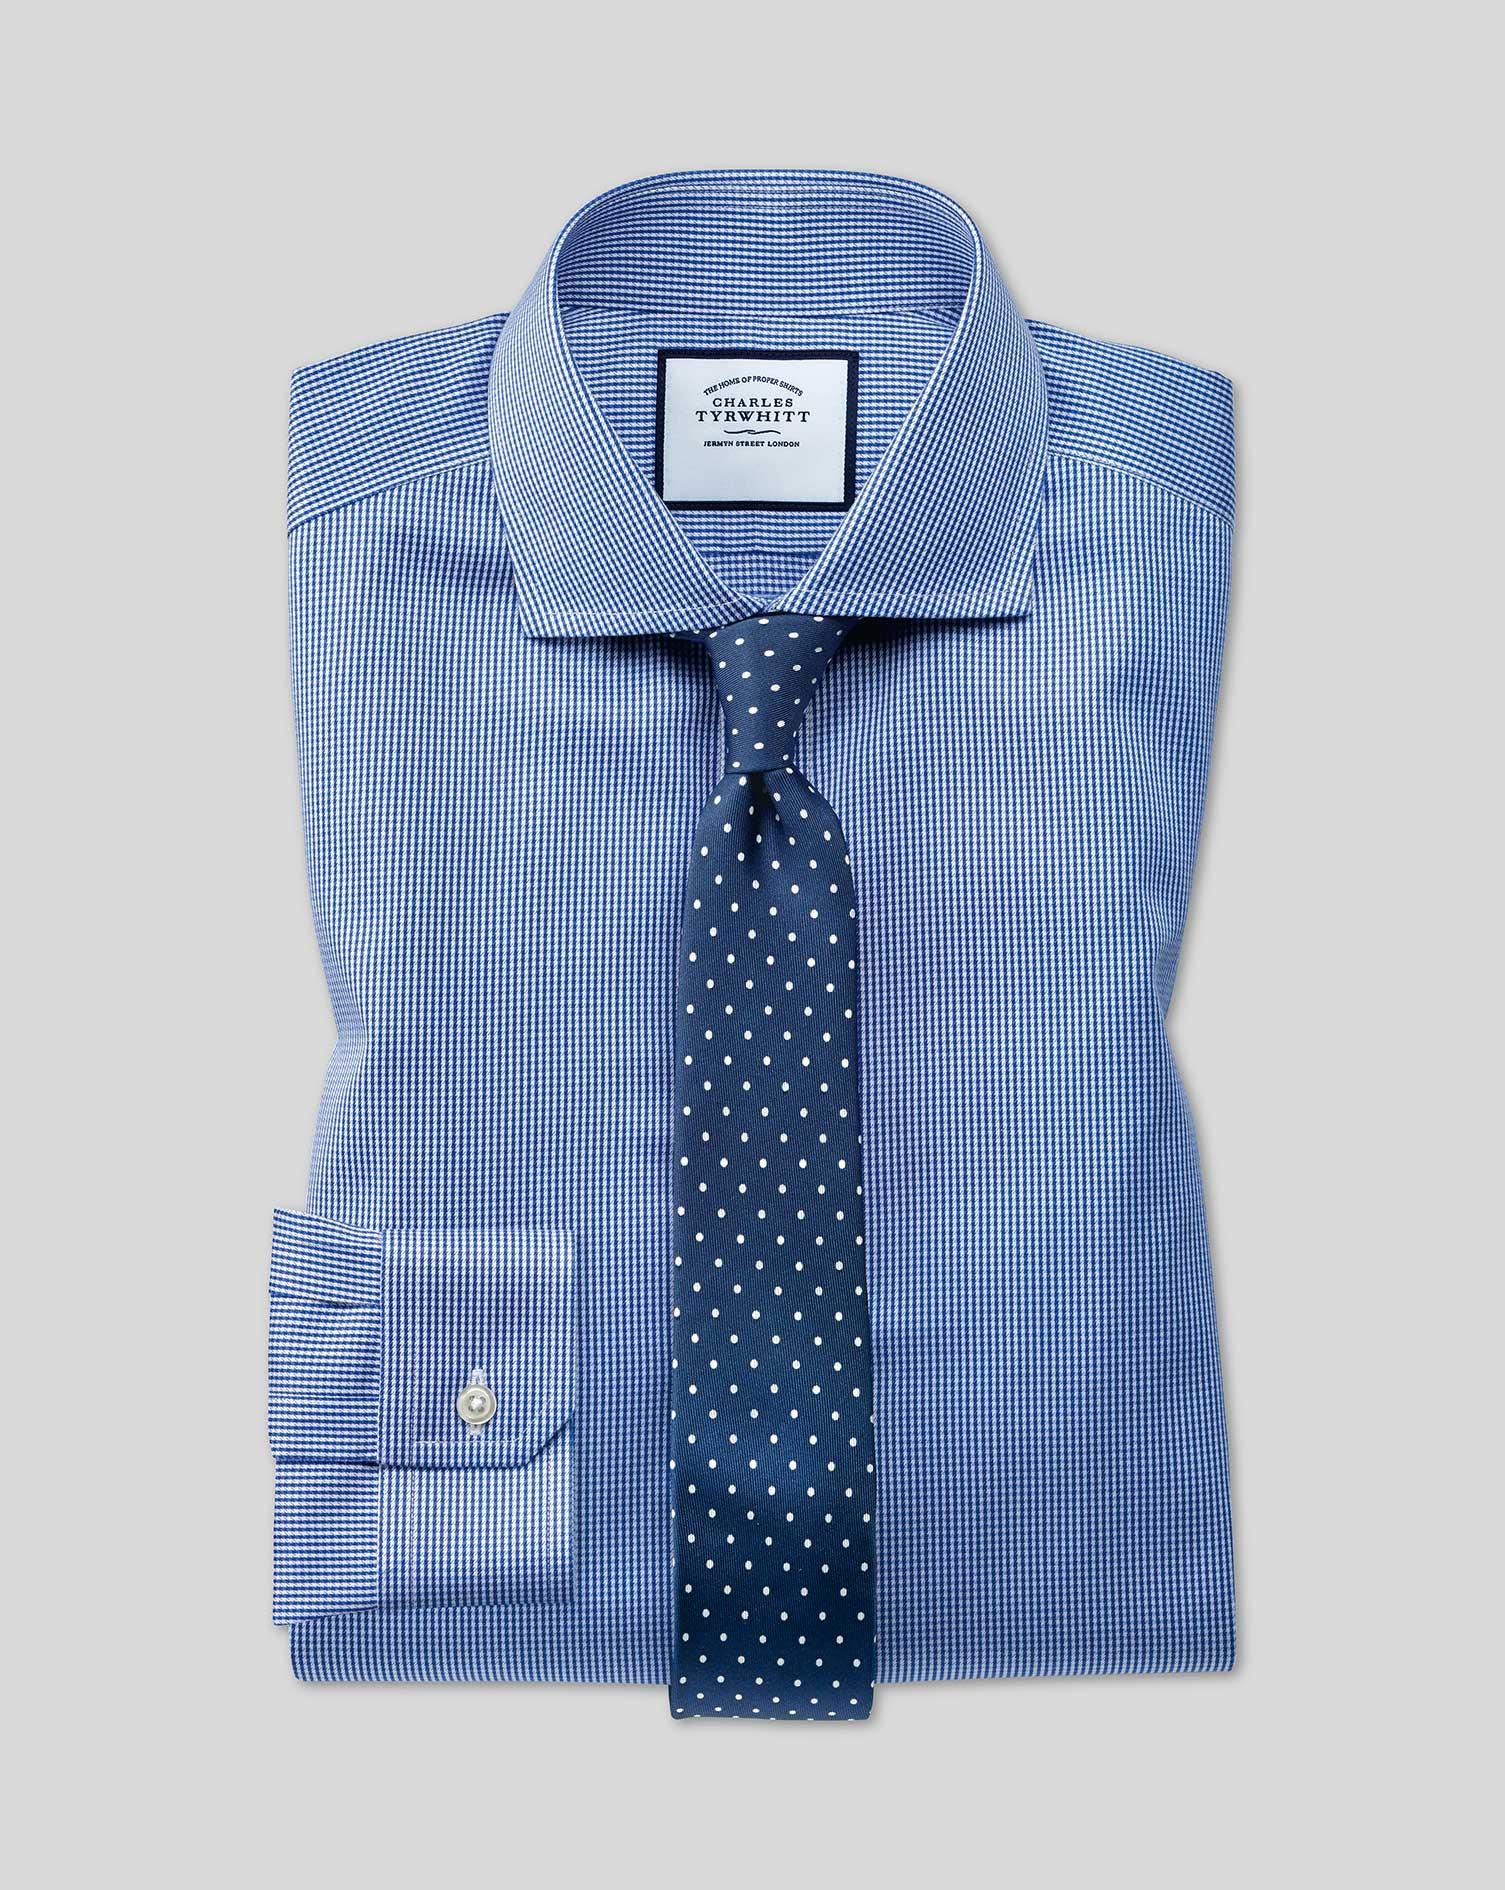 Super Slim Fit Non-Iron Royal Blue Puppytooth Cotton Formal Shirt Single Cuff Size 14/33 by Charles